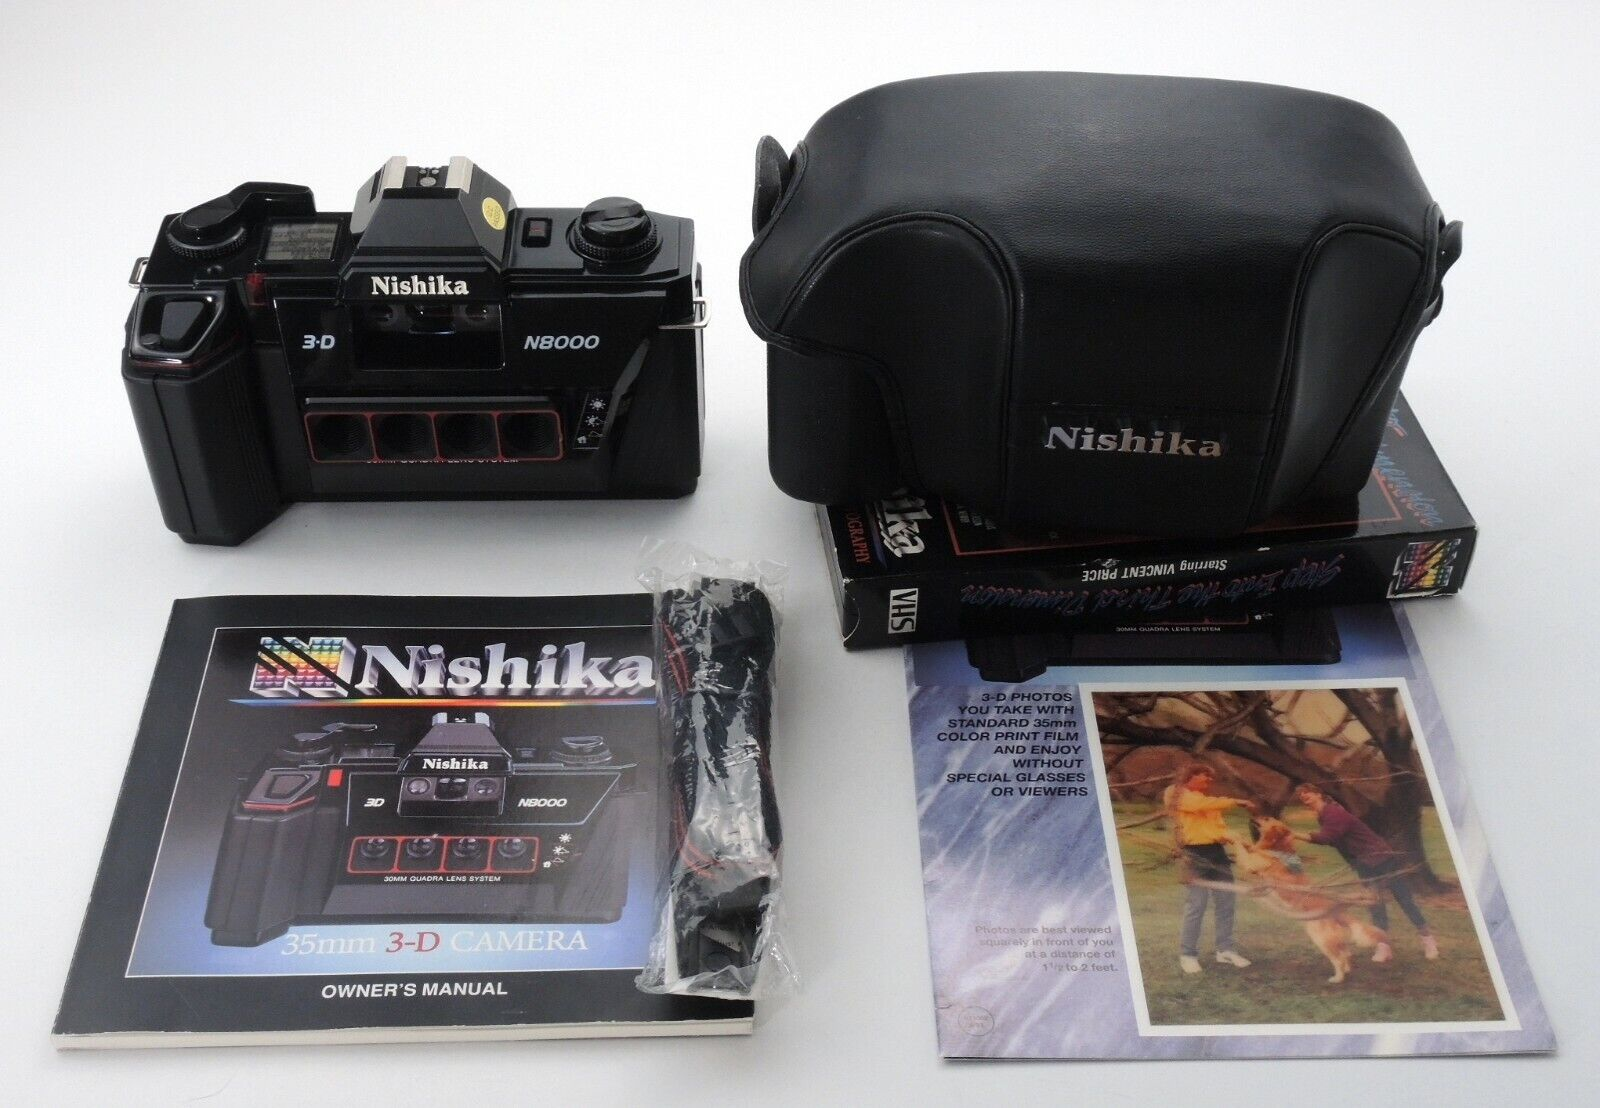 NISHIKA N8000 35mm 3-D CAMERA W/ CASE BARELY USED FULLY TESTED WORKS PERFECT - $199.99